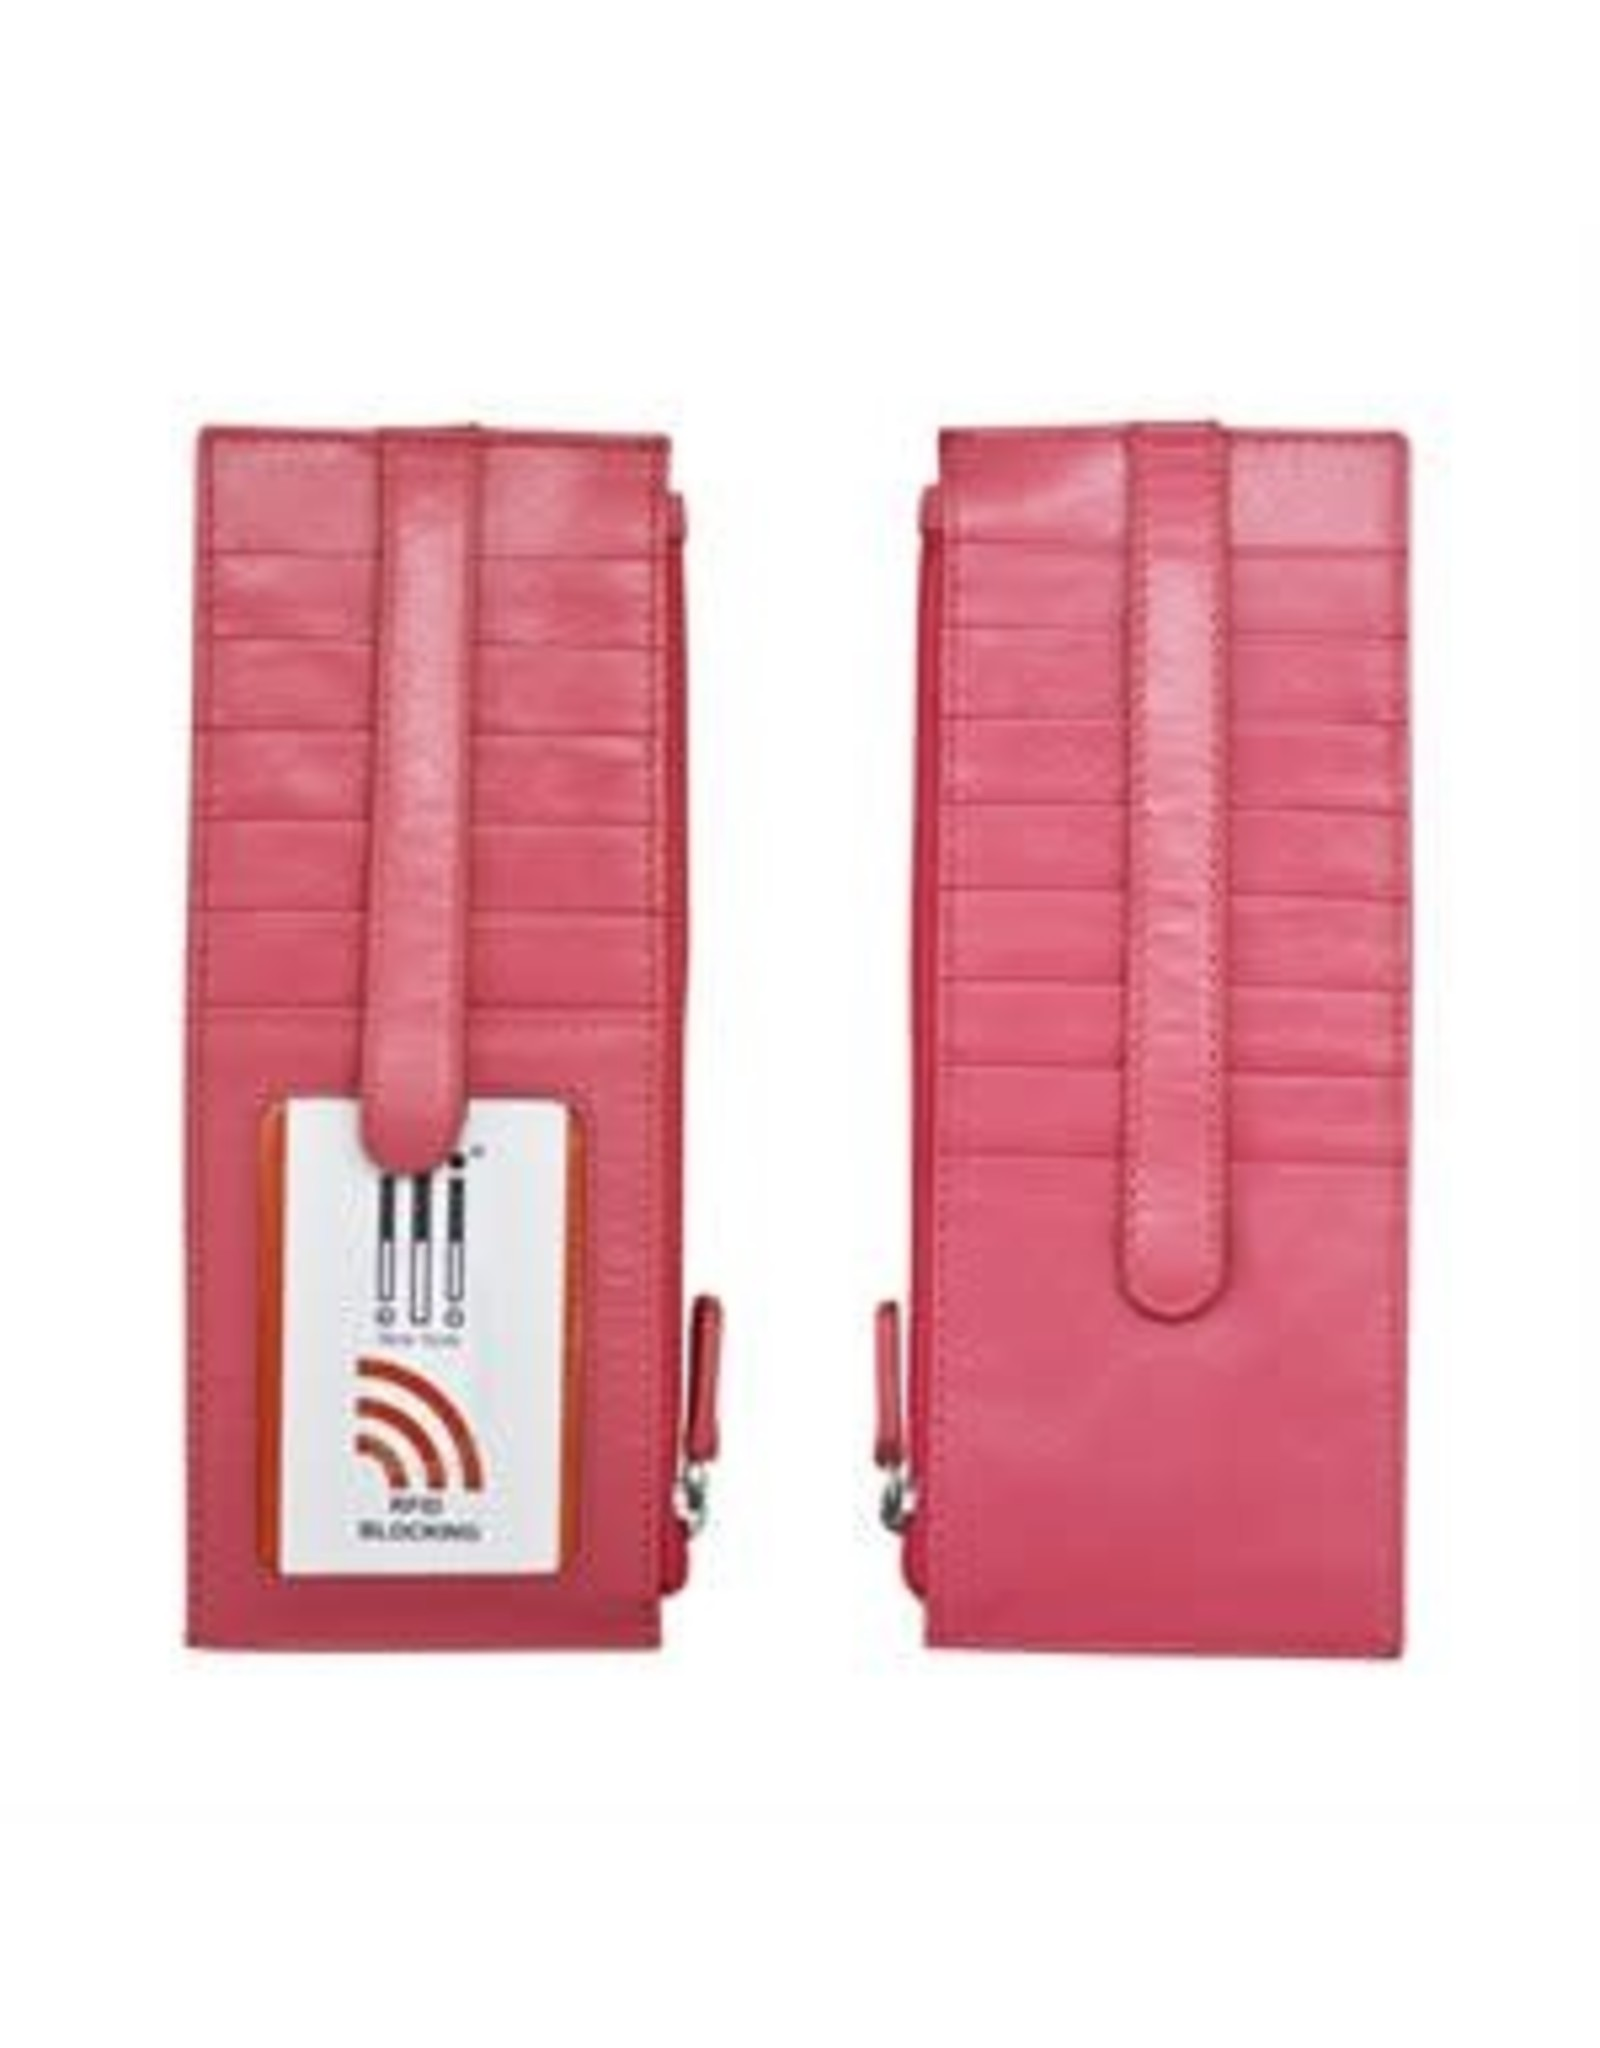 Leather Handbags and Accessories 7800 Hot Pink - RFID Card Holder